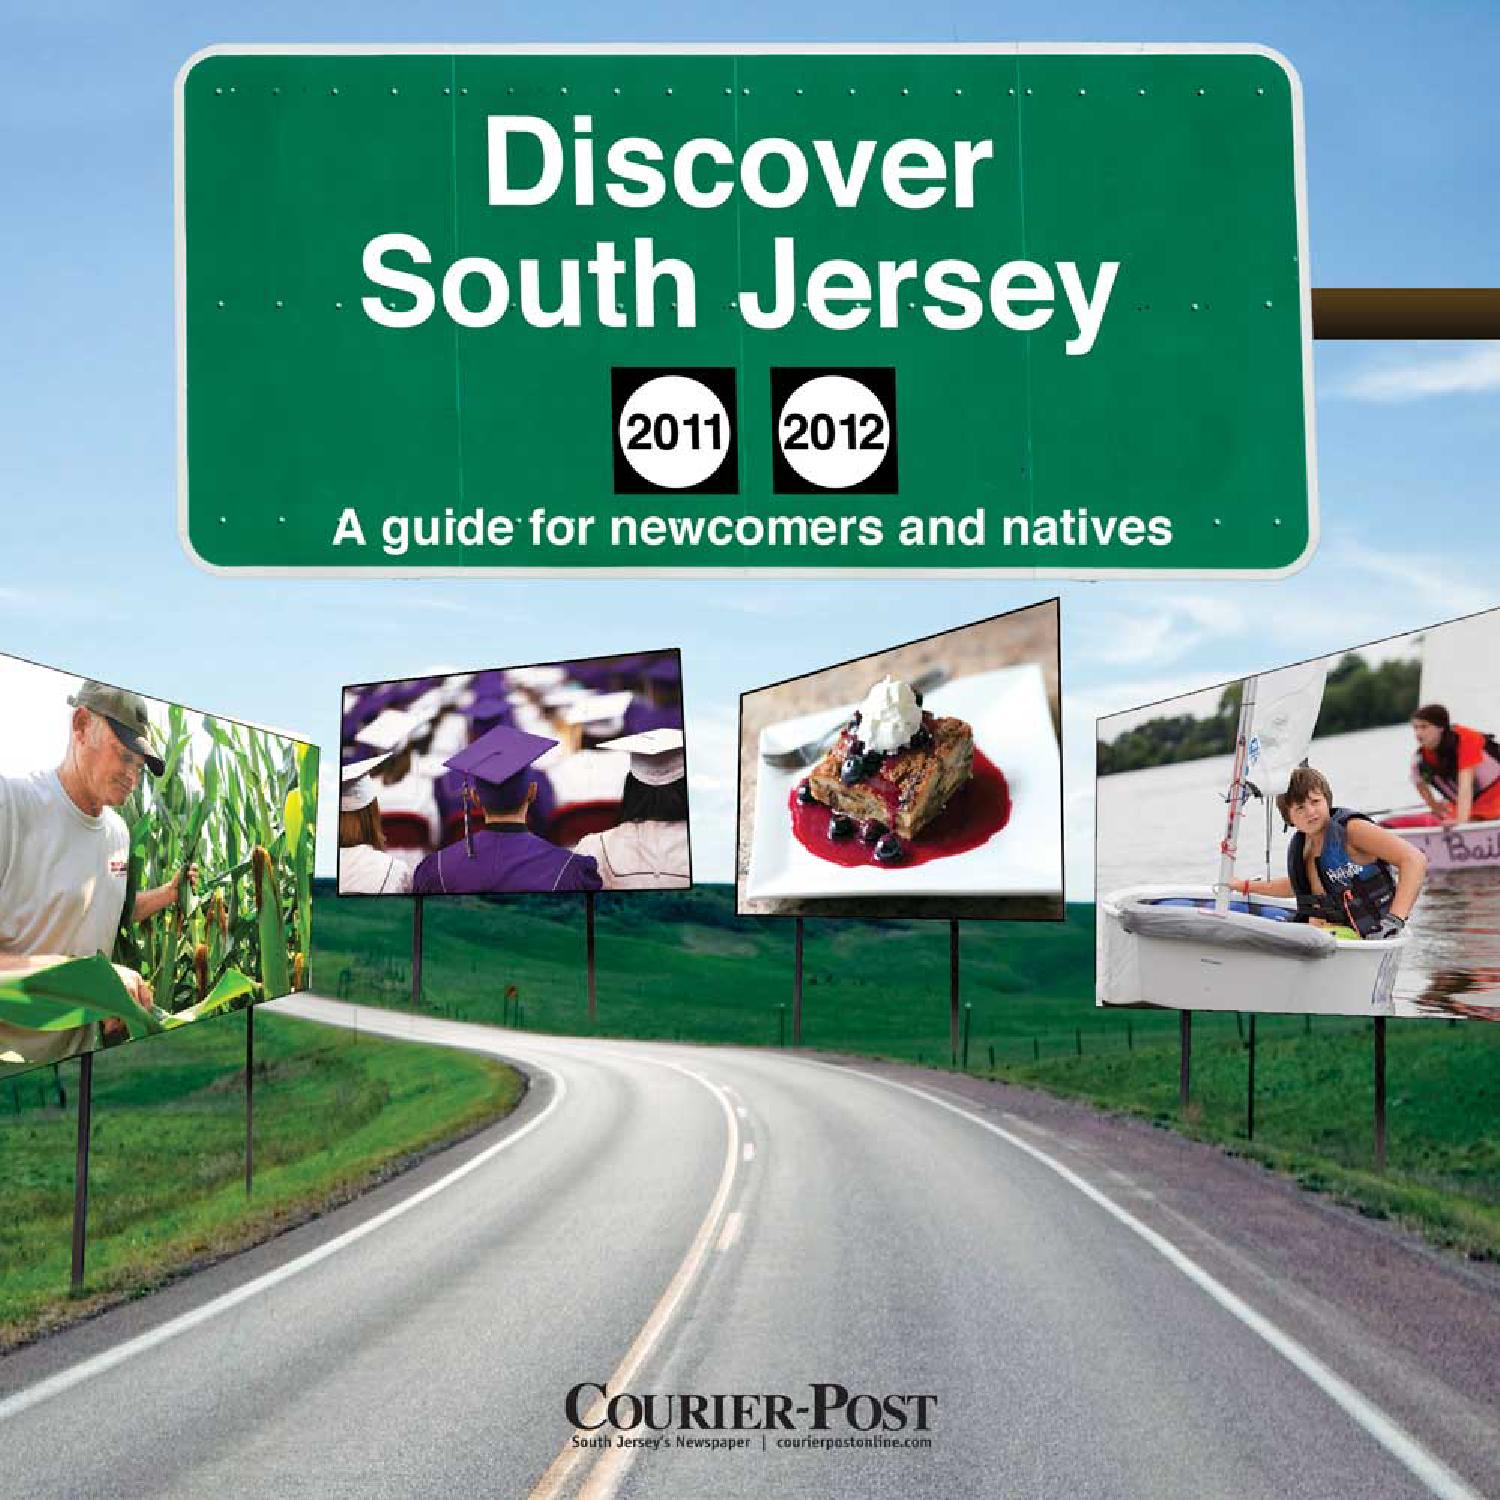 South Jersey Guide 2011 12 By Mark Correa Issuu Diagram Of Kingda Ka Related Keywords Suggestions